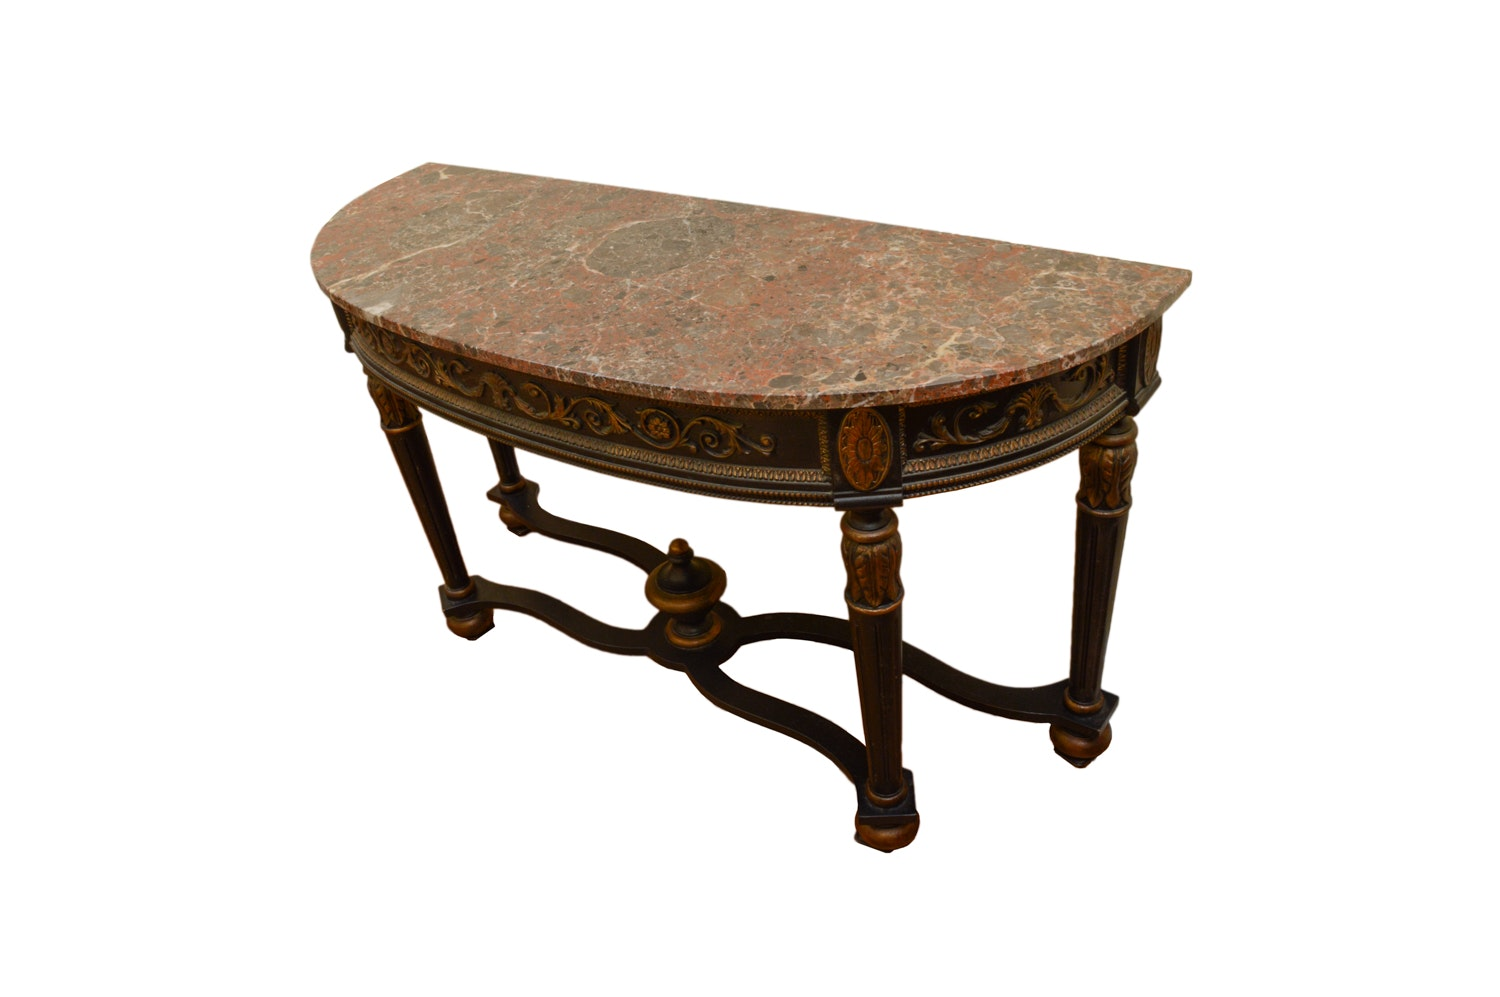 Regency Style Demilune Console Table with Stone Top